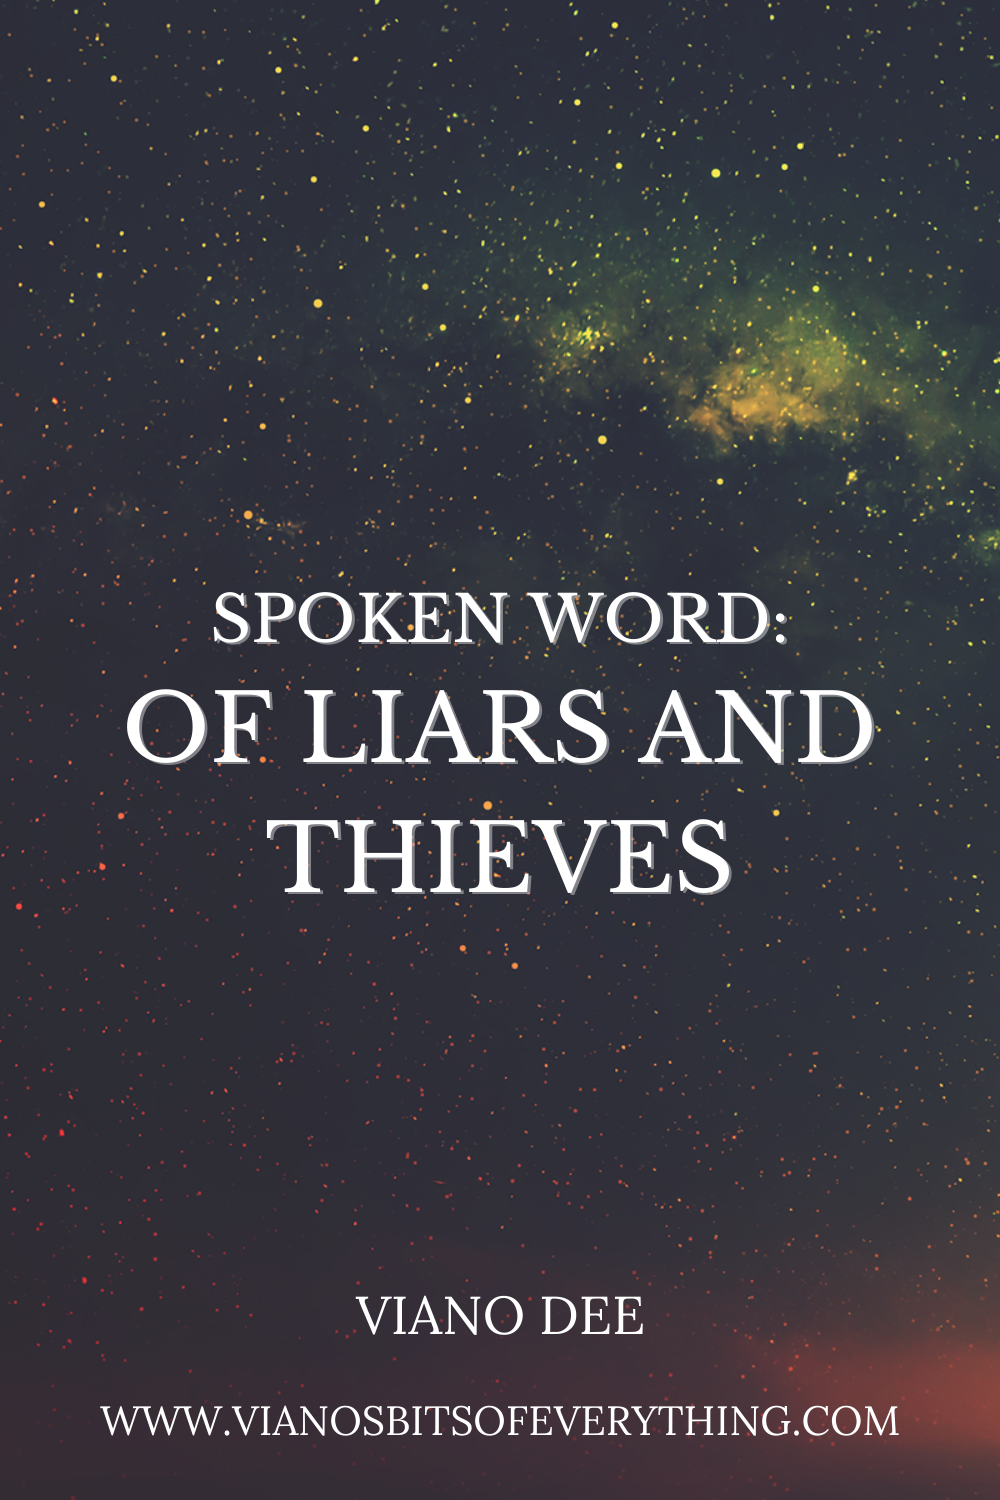 Of Liars And Thieves: Spoken Word Poetry